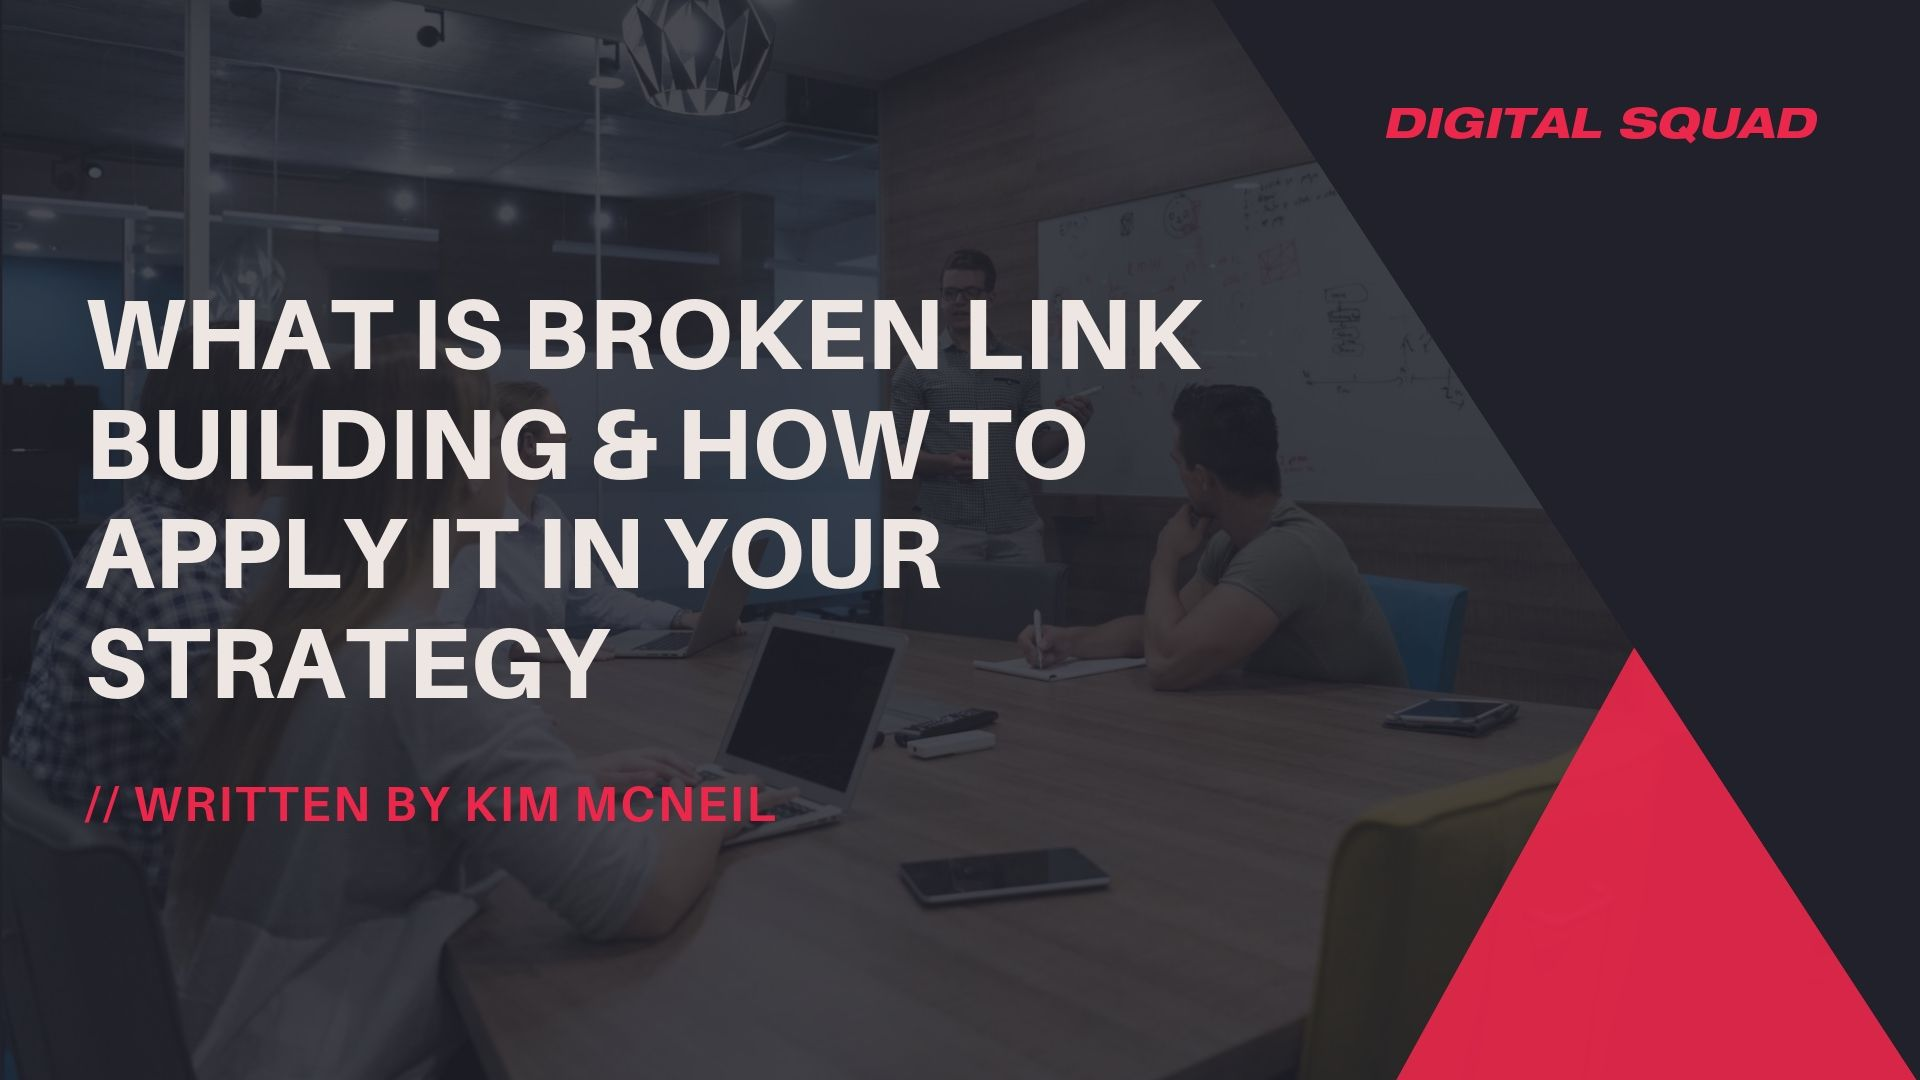 What Is Broken Link Building & How to Apply it in Your Strategy